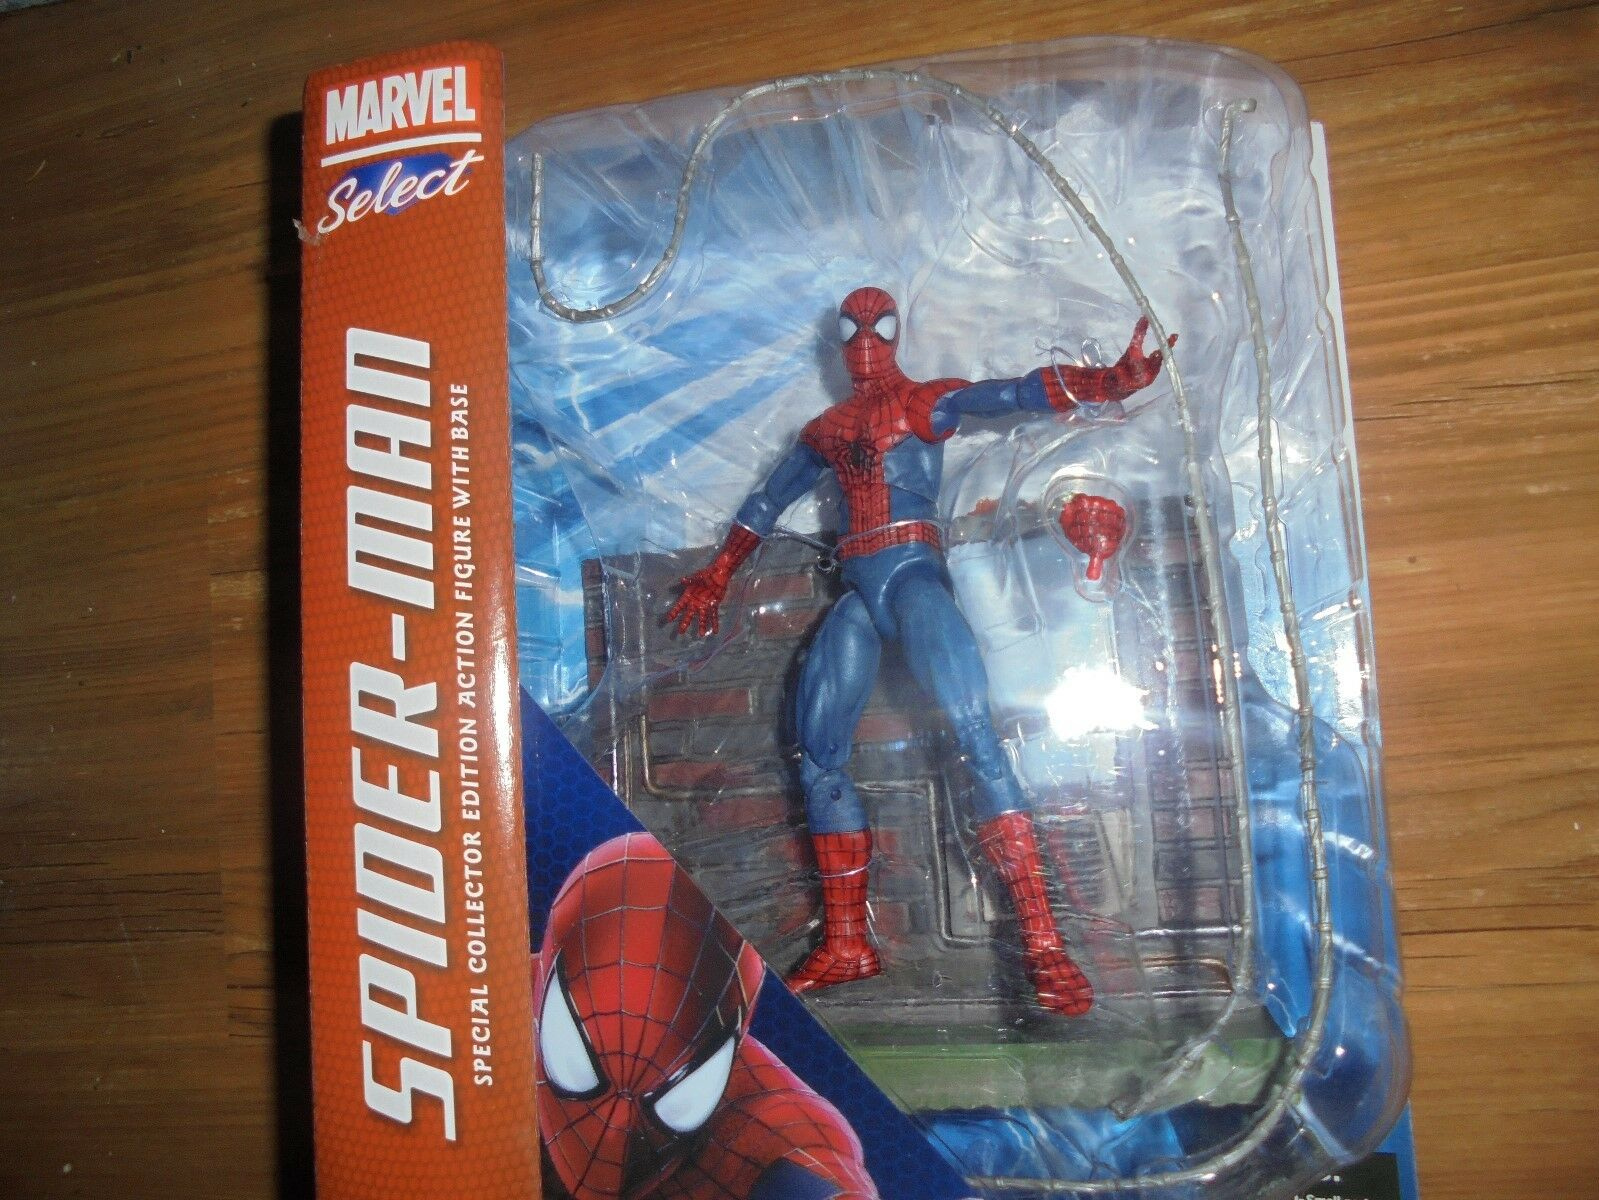 Amazing SPIDER-MAN 2 Special Collectors Edition Action Figure Diamond Select2014